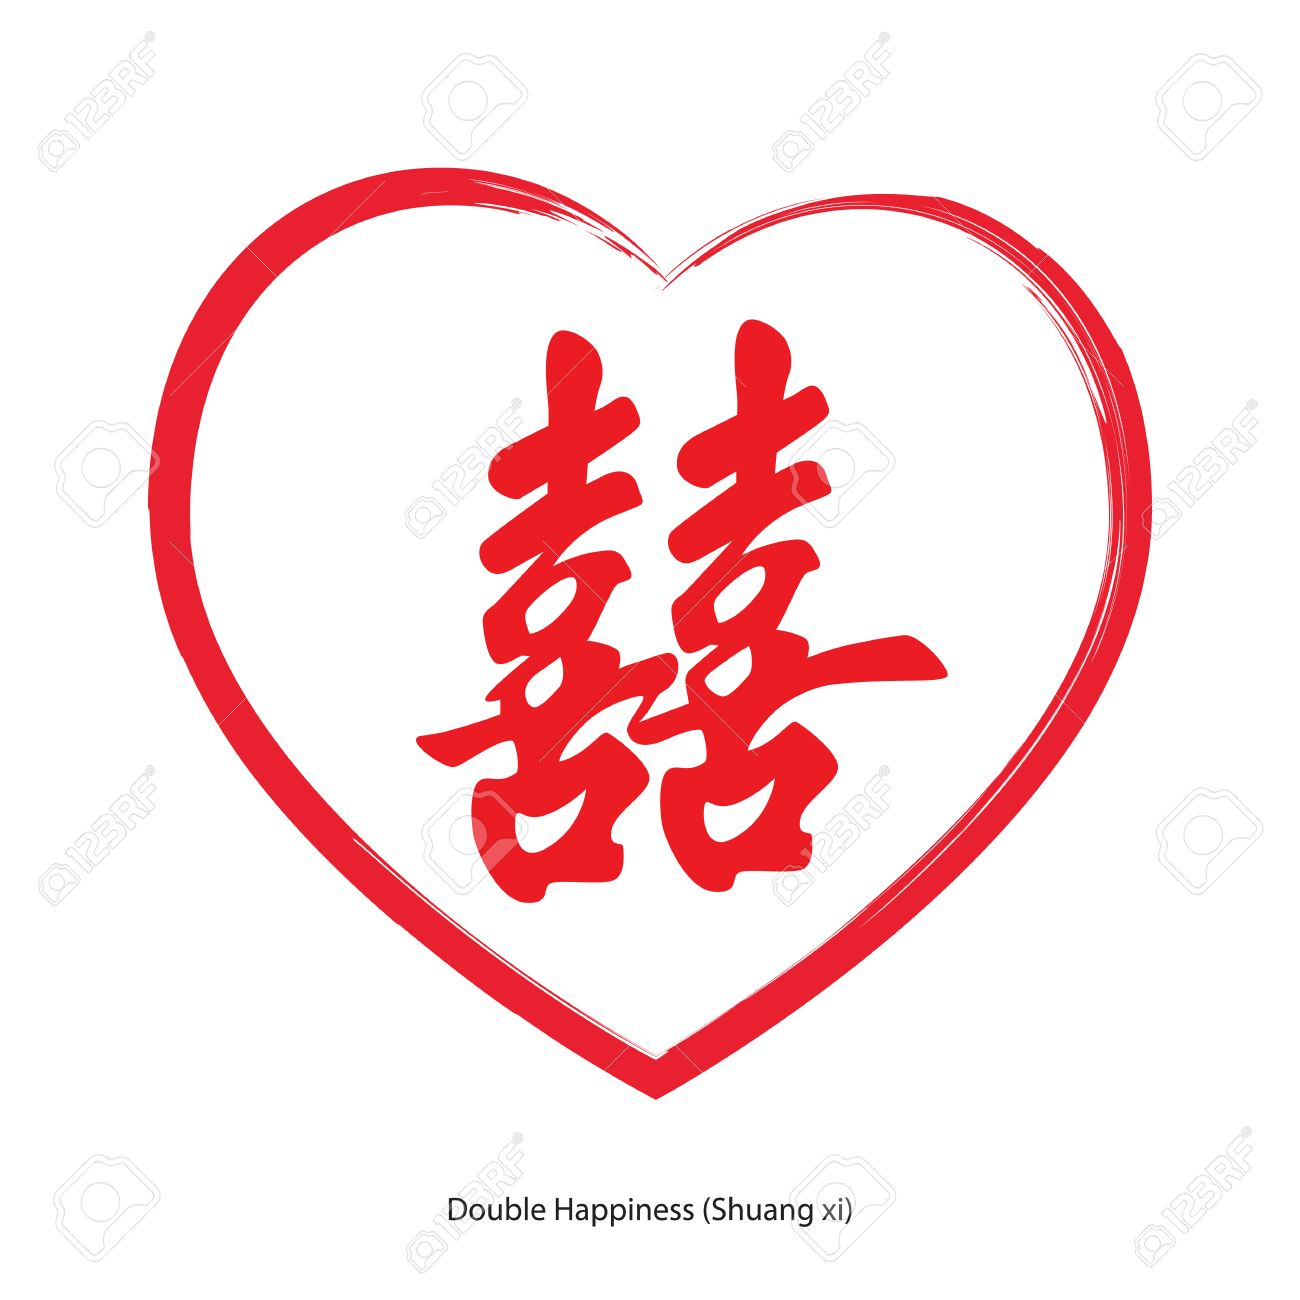 Hinese Character Double Happiness With Heart Shuang Xi Chinese